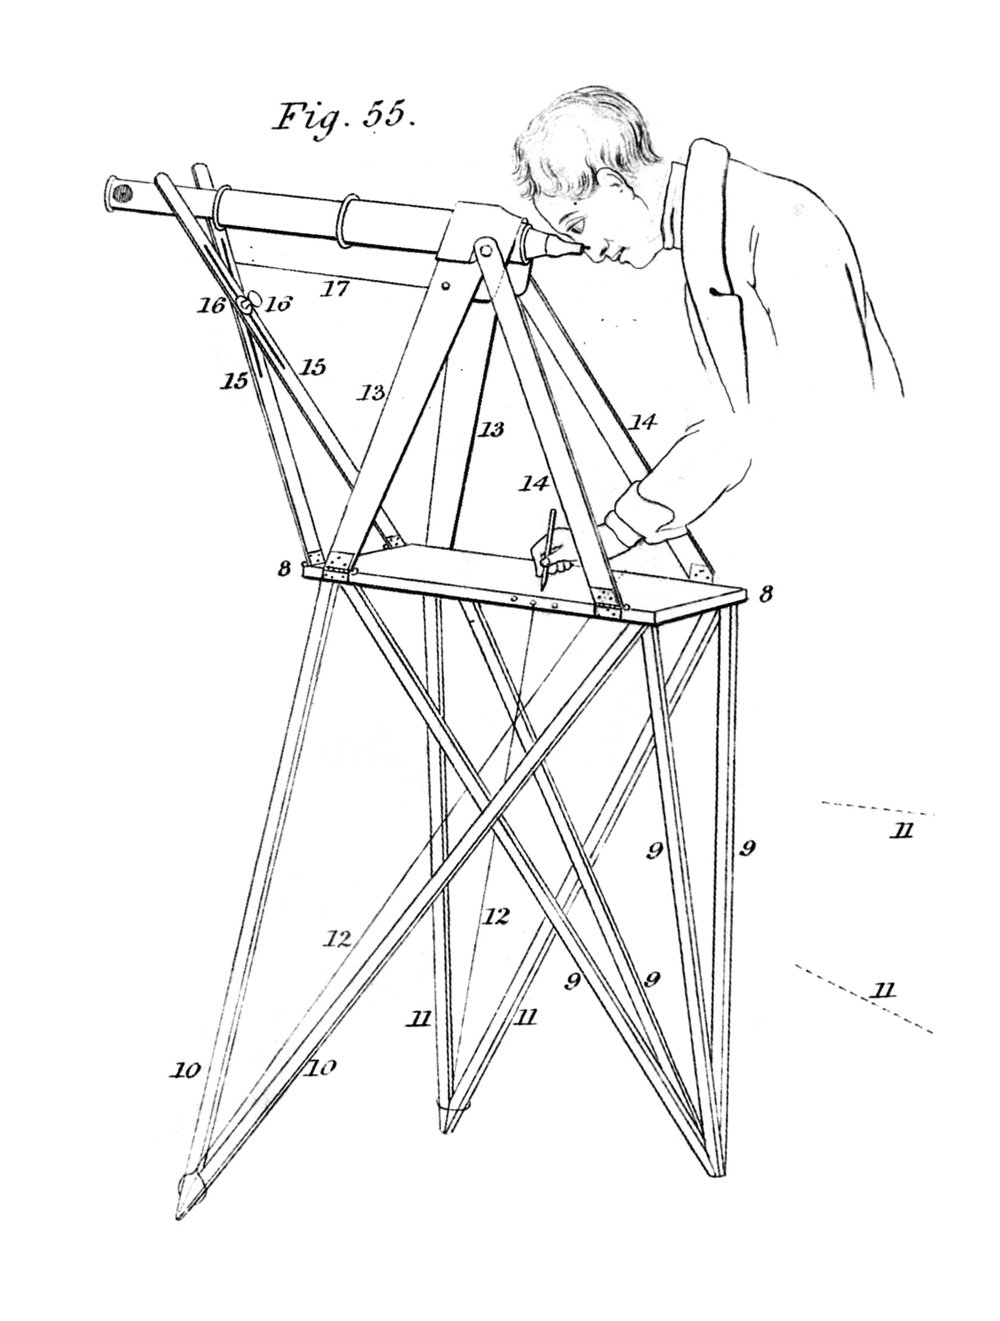 Cornelius Varley's Patent Graphic Telescope, with custom stabilizing table (1836)